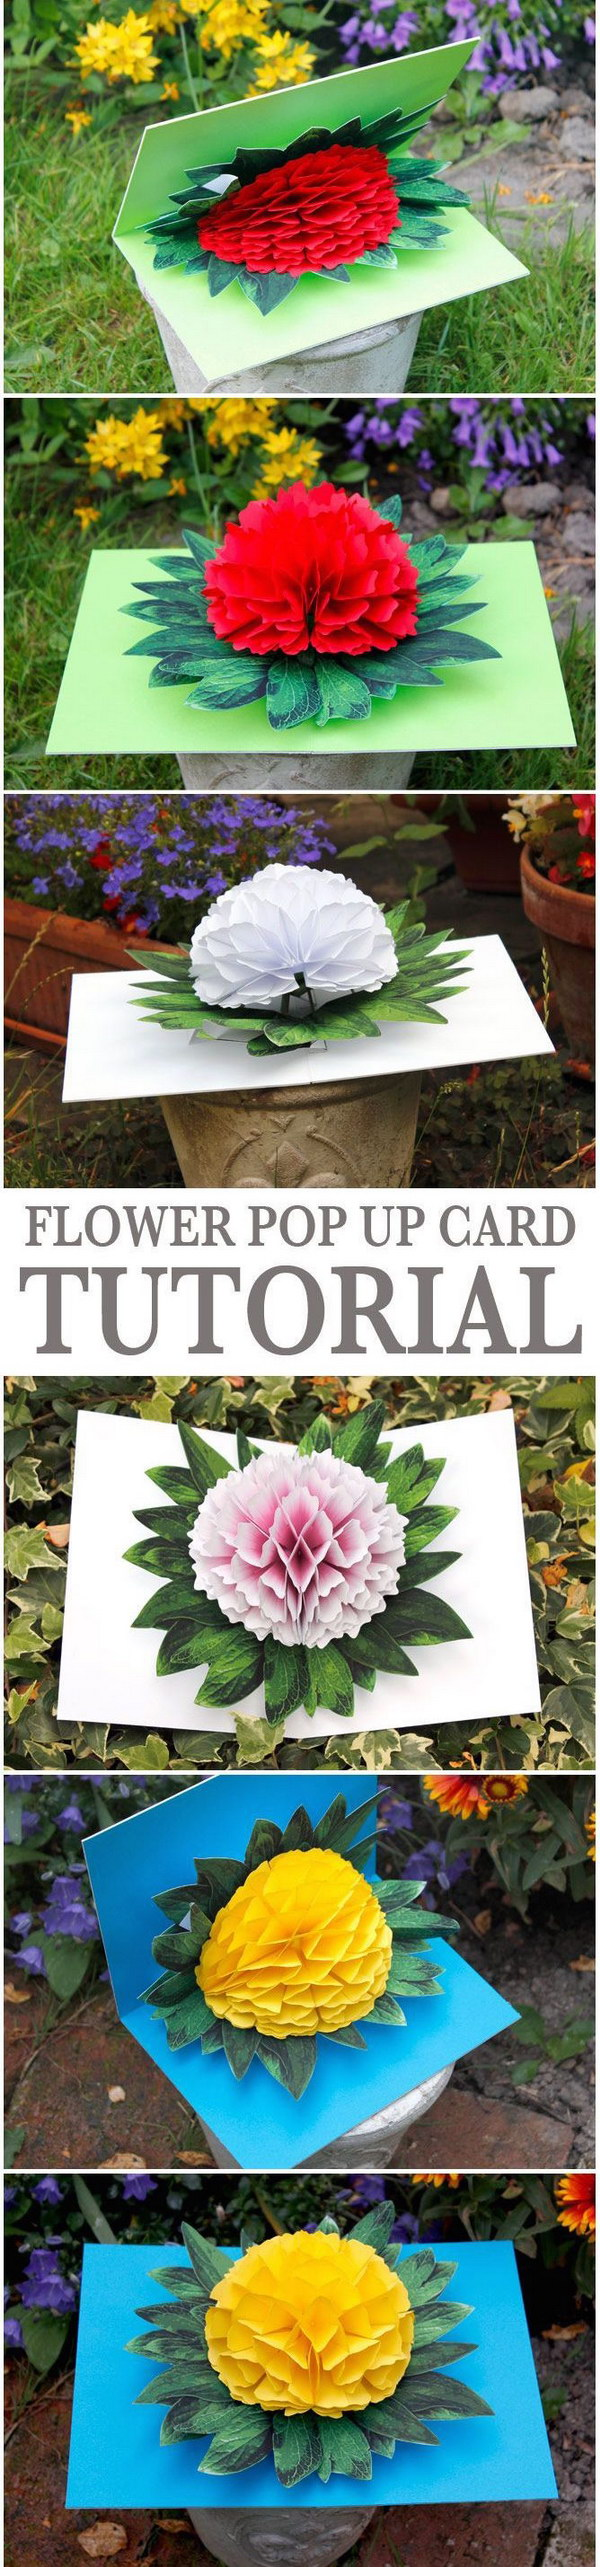 Flower Pop-up Card.